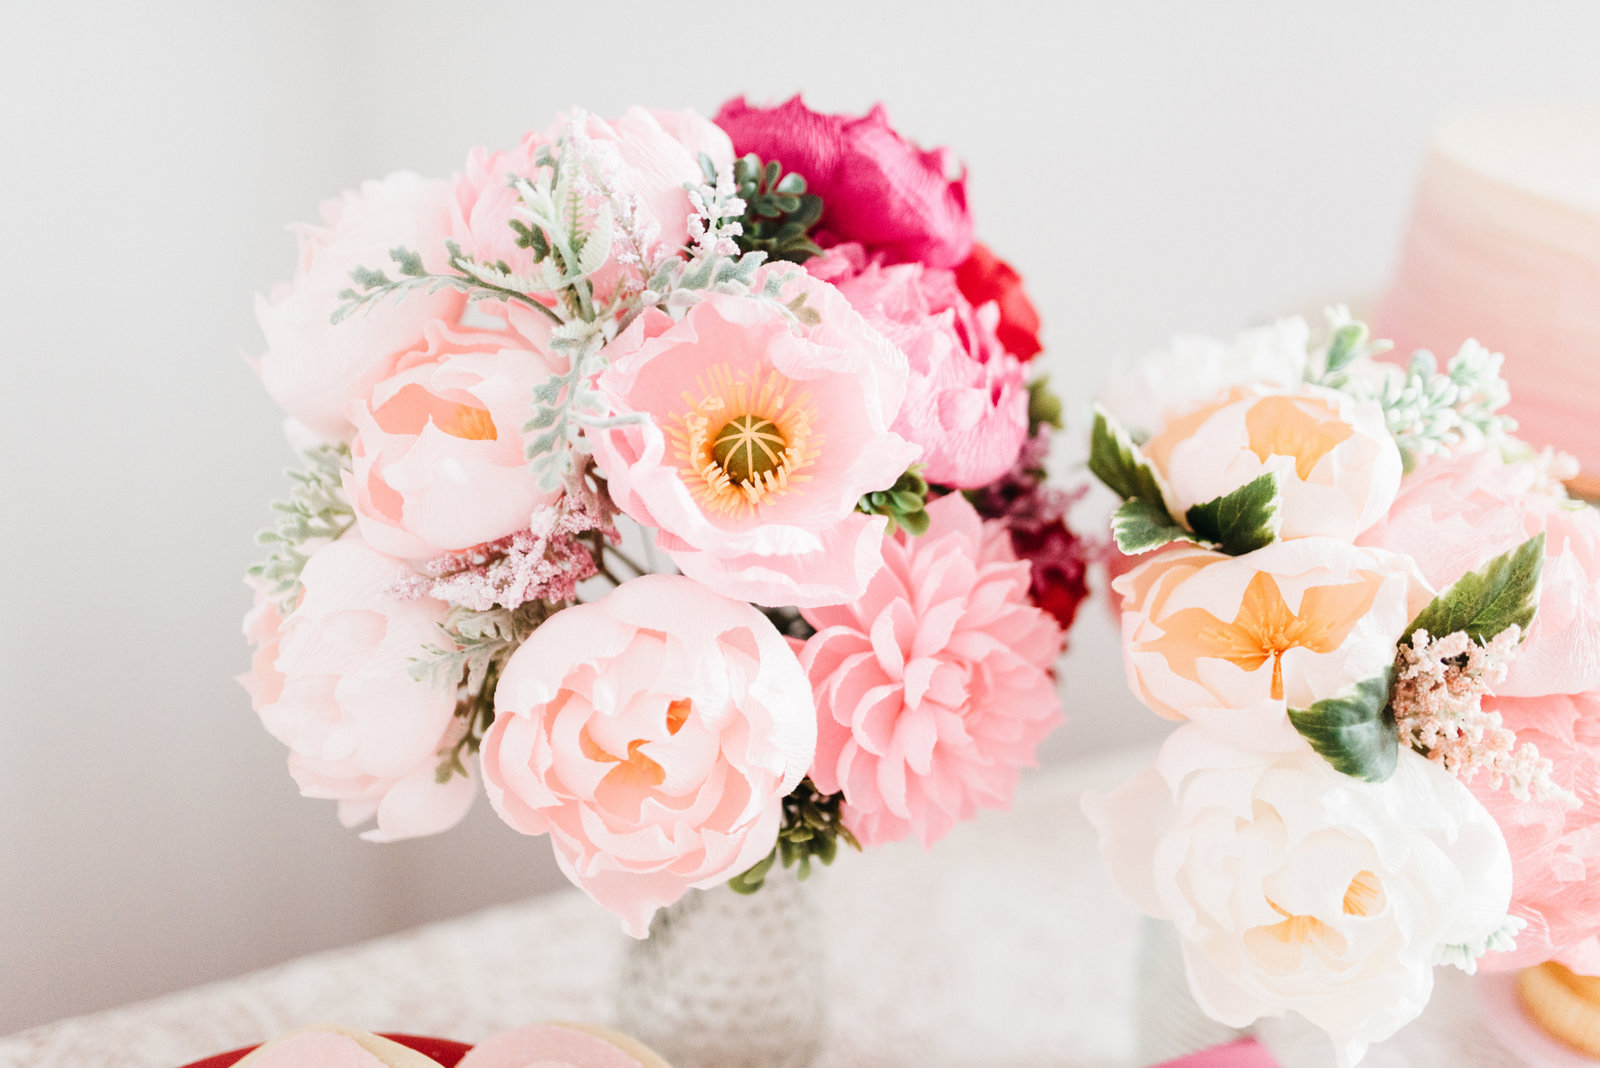 Paper flowers by The Lovely Ave